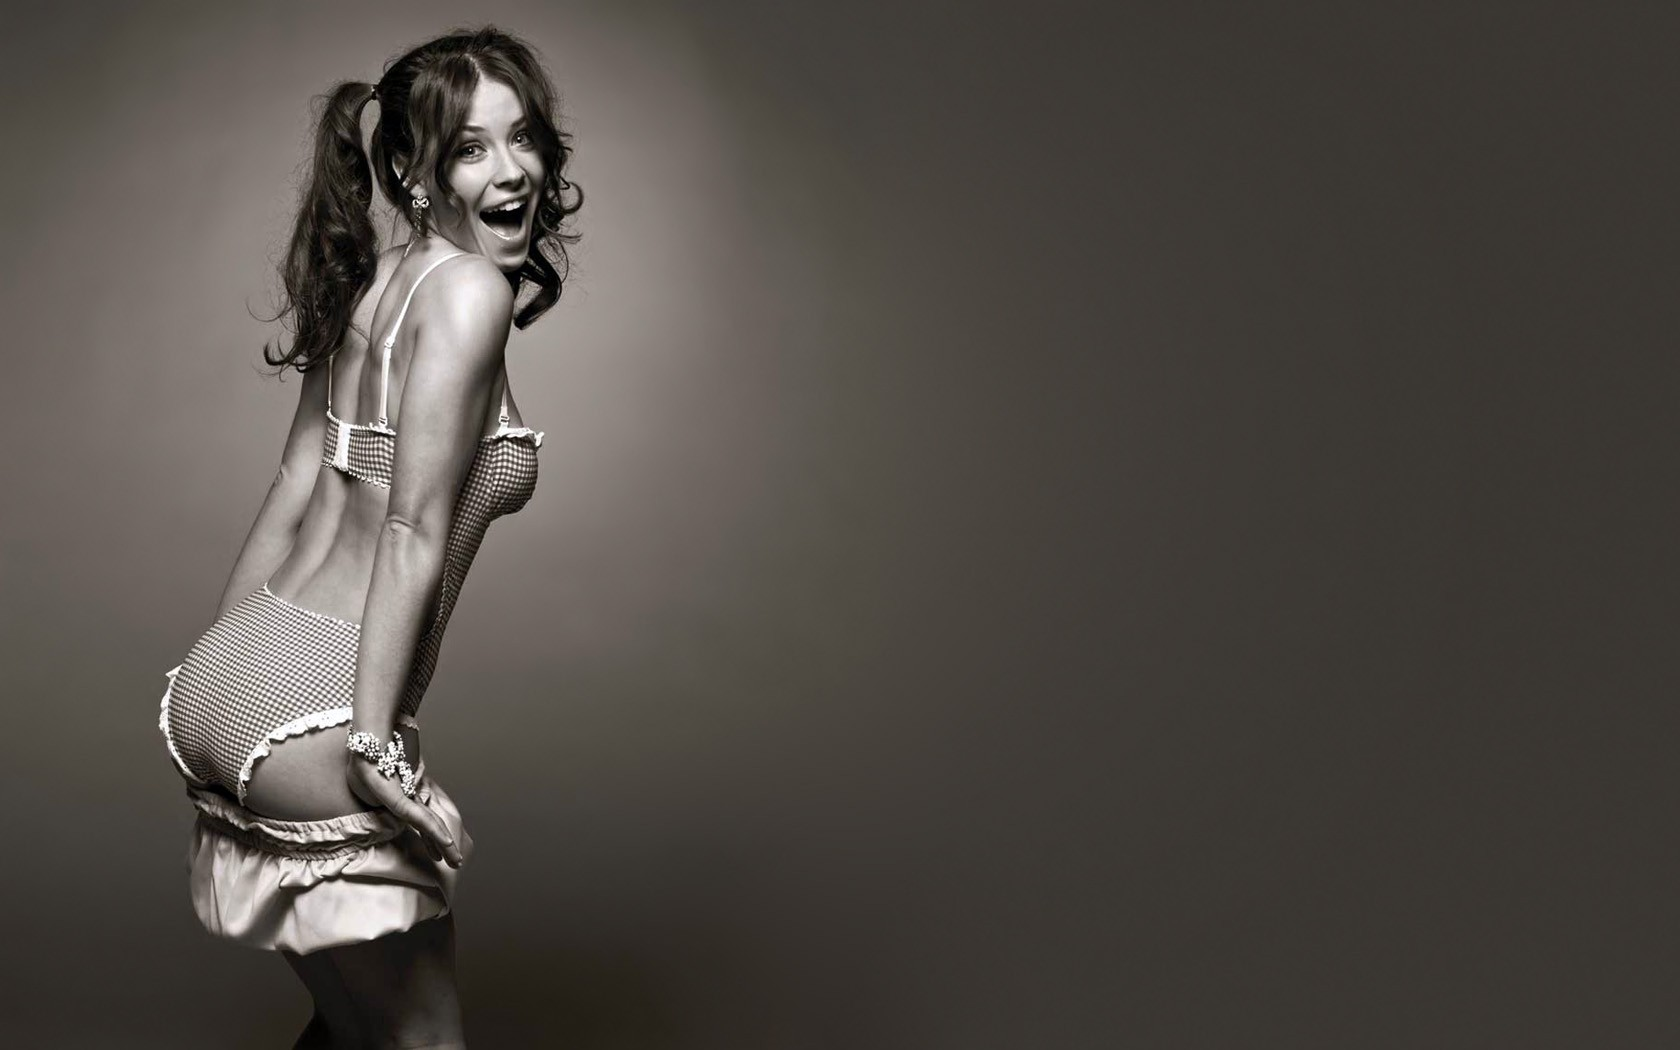 woman evangeline lilly Celebrity HD Wallpaper